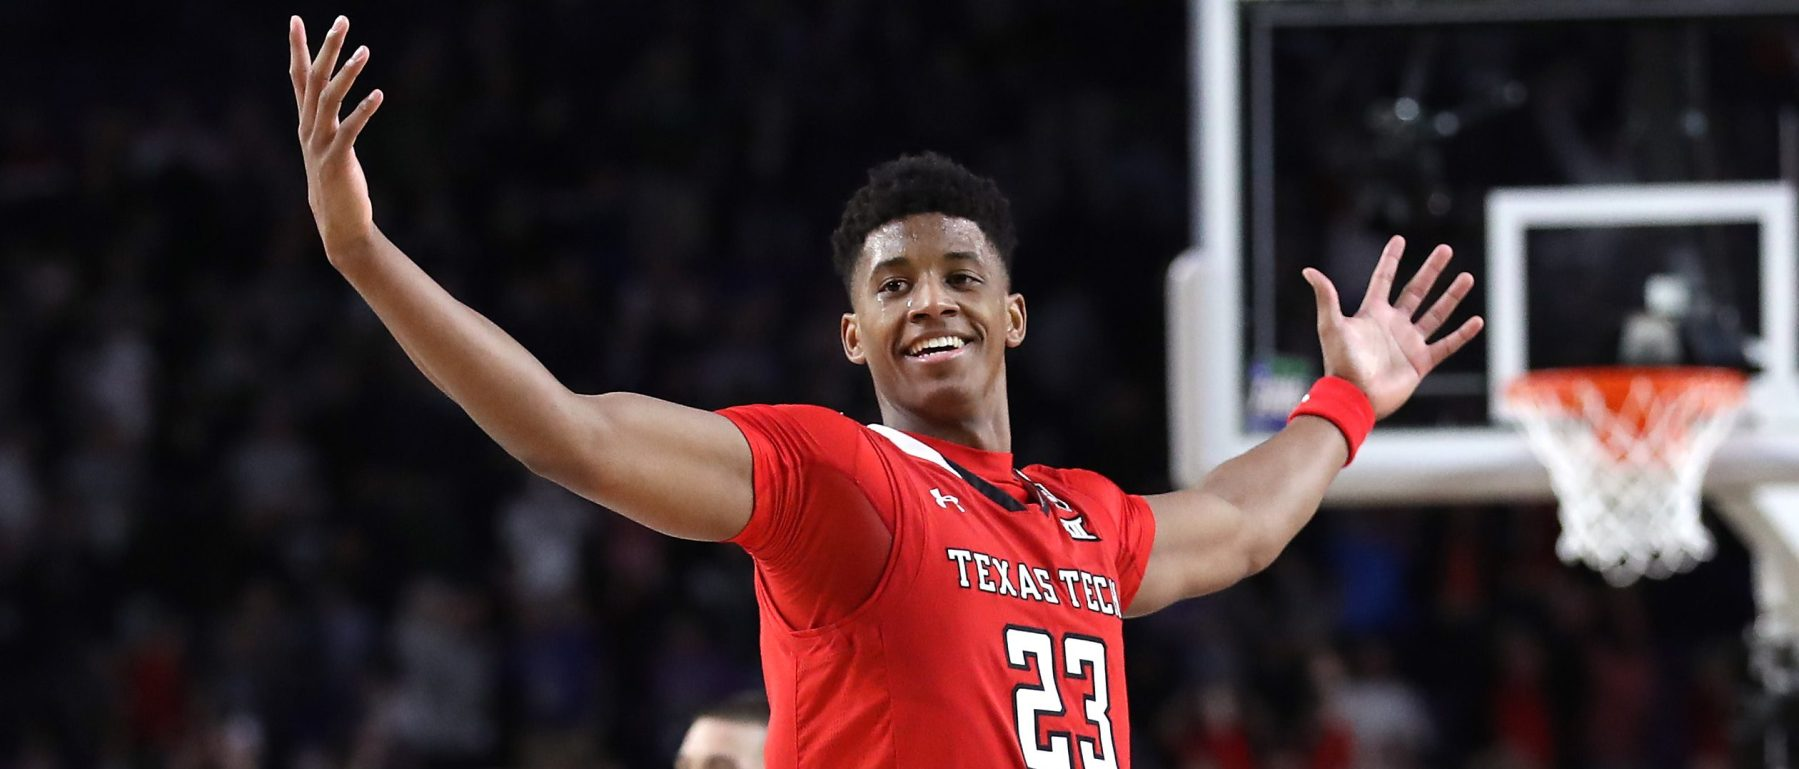 Jarrett Culver #23 of the Texas Tech Red Raiders celebrates during the 2019 NCAA Final Four semifinal Saturday. (Photo by Streeter Lecka/Getty Images)